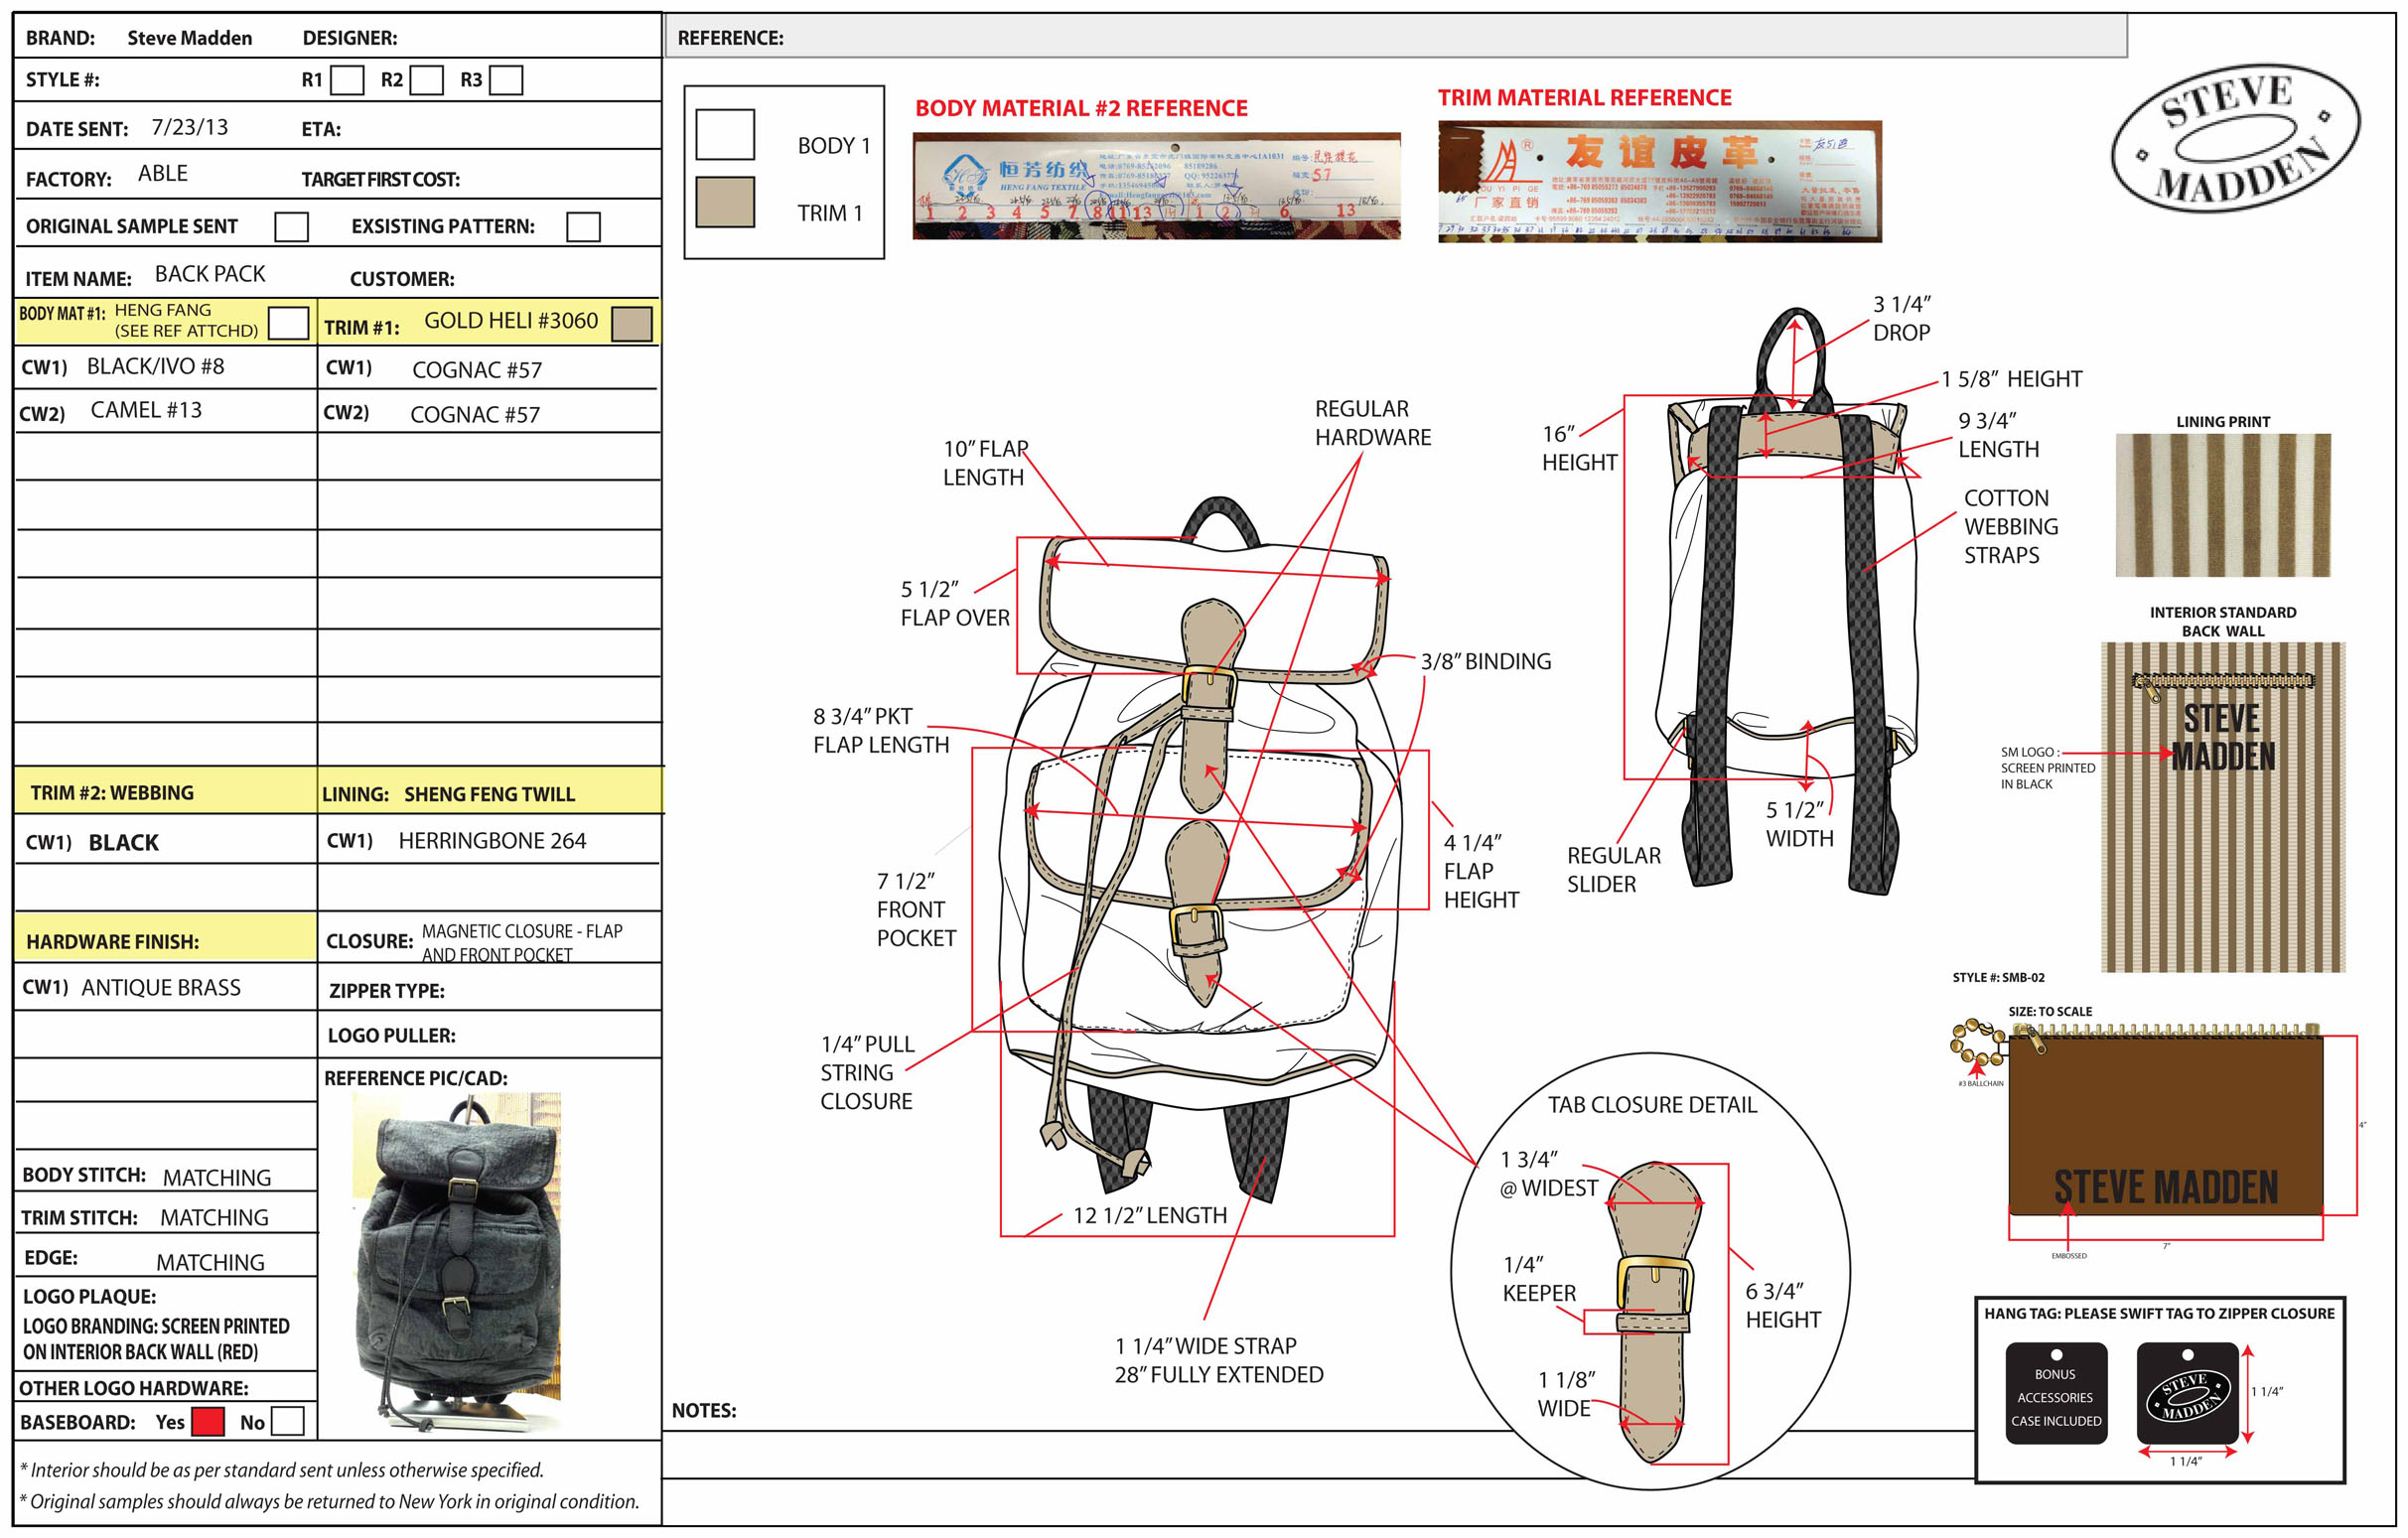 1 BACK PACK - spec sheet-1.jpg